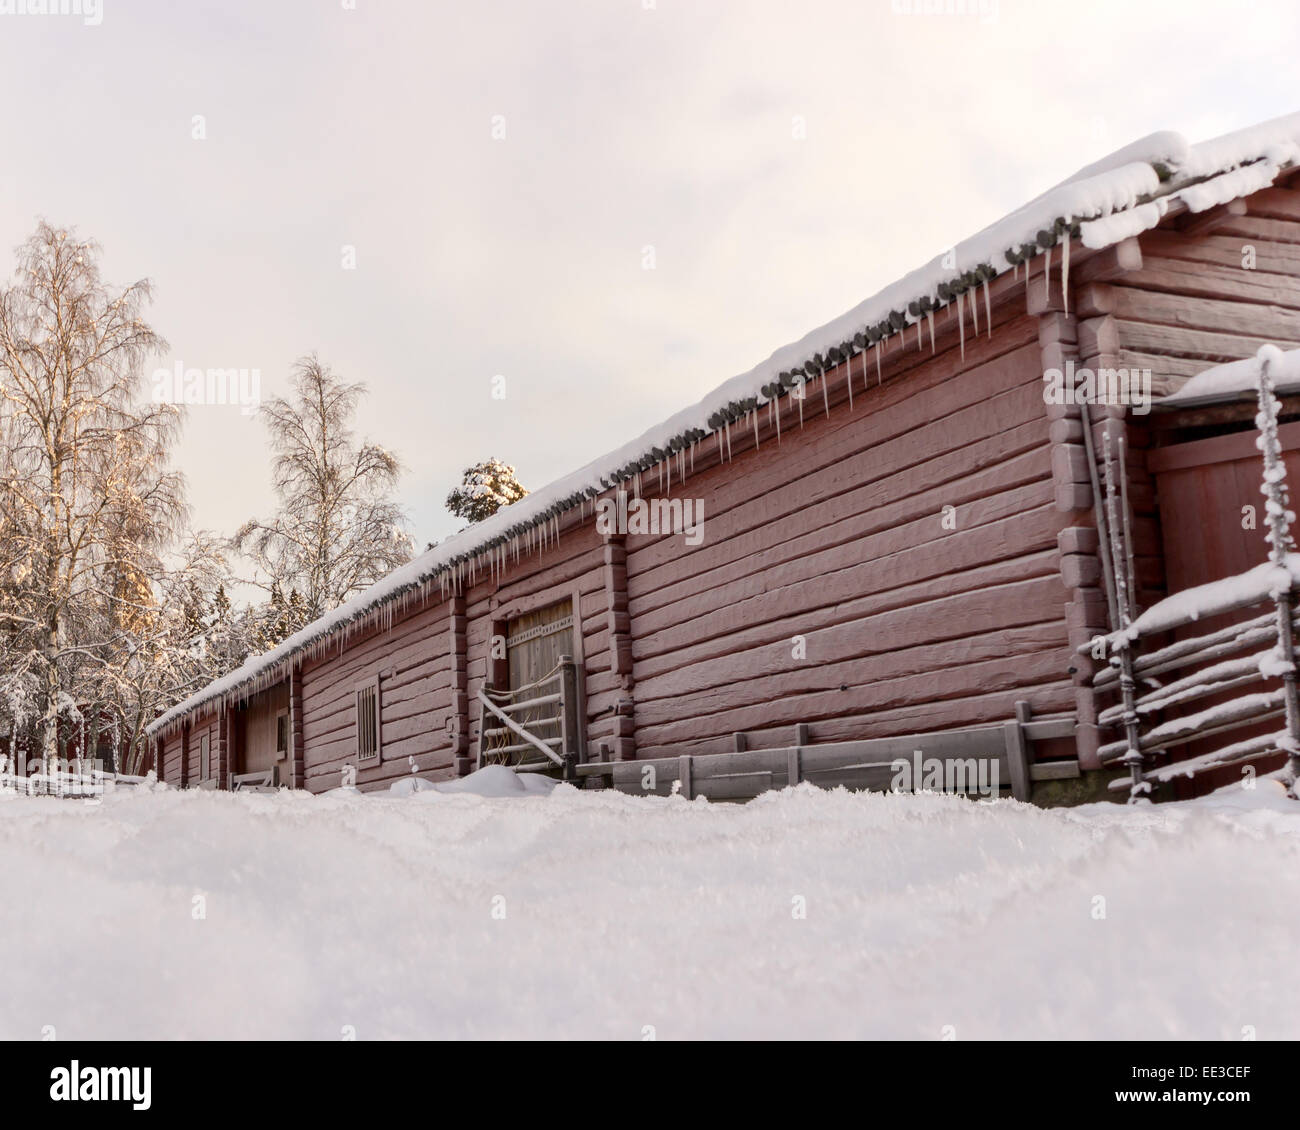 Swedish Old Farm House in Winter - Stock Image